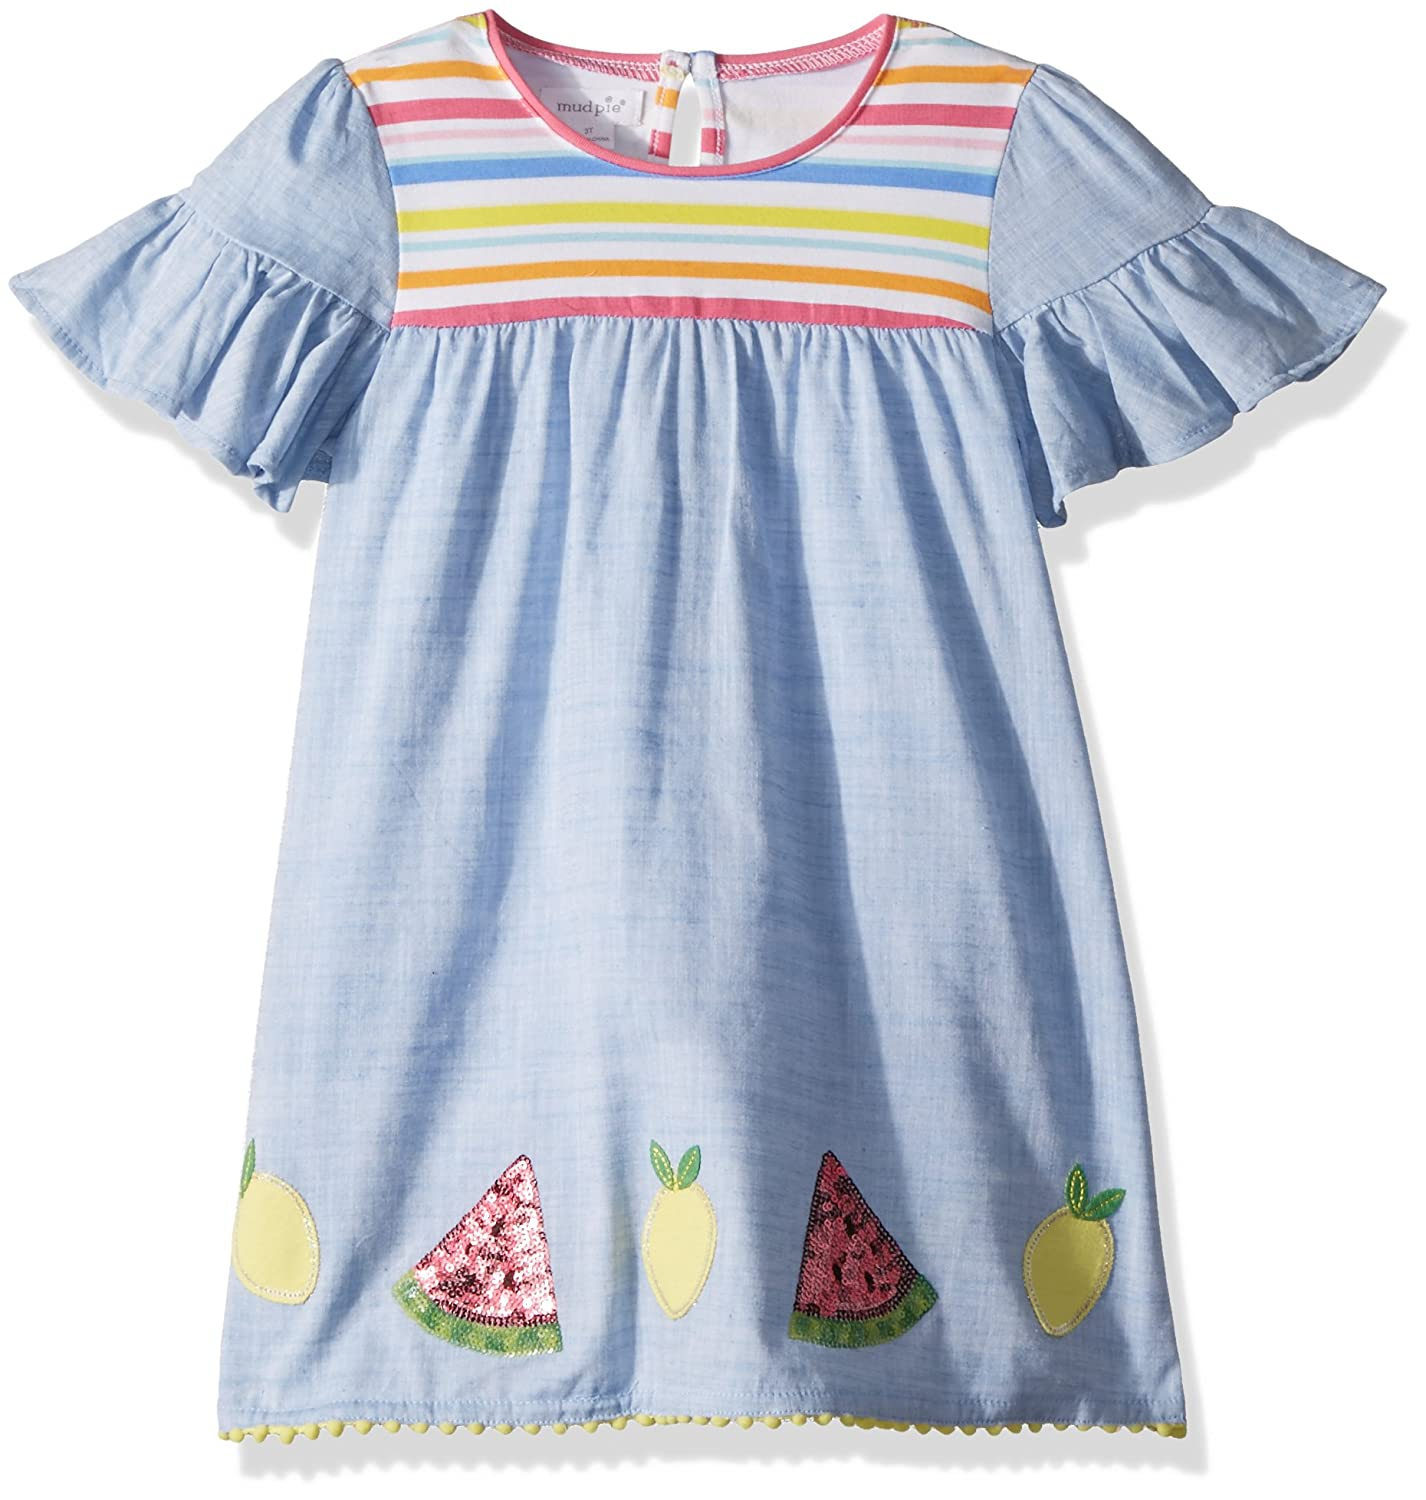 787990ddd6b Short sleeve chambray dress features ruffle sleeves and contrast cotton  spandex chest piecing. Sequin watermelon and jersey lemon appliques and  pom-pom trim ...